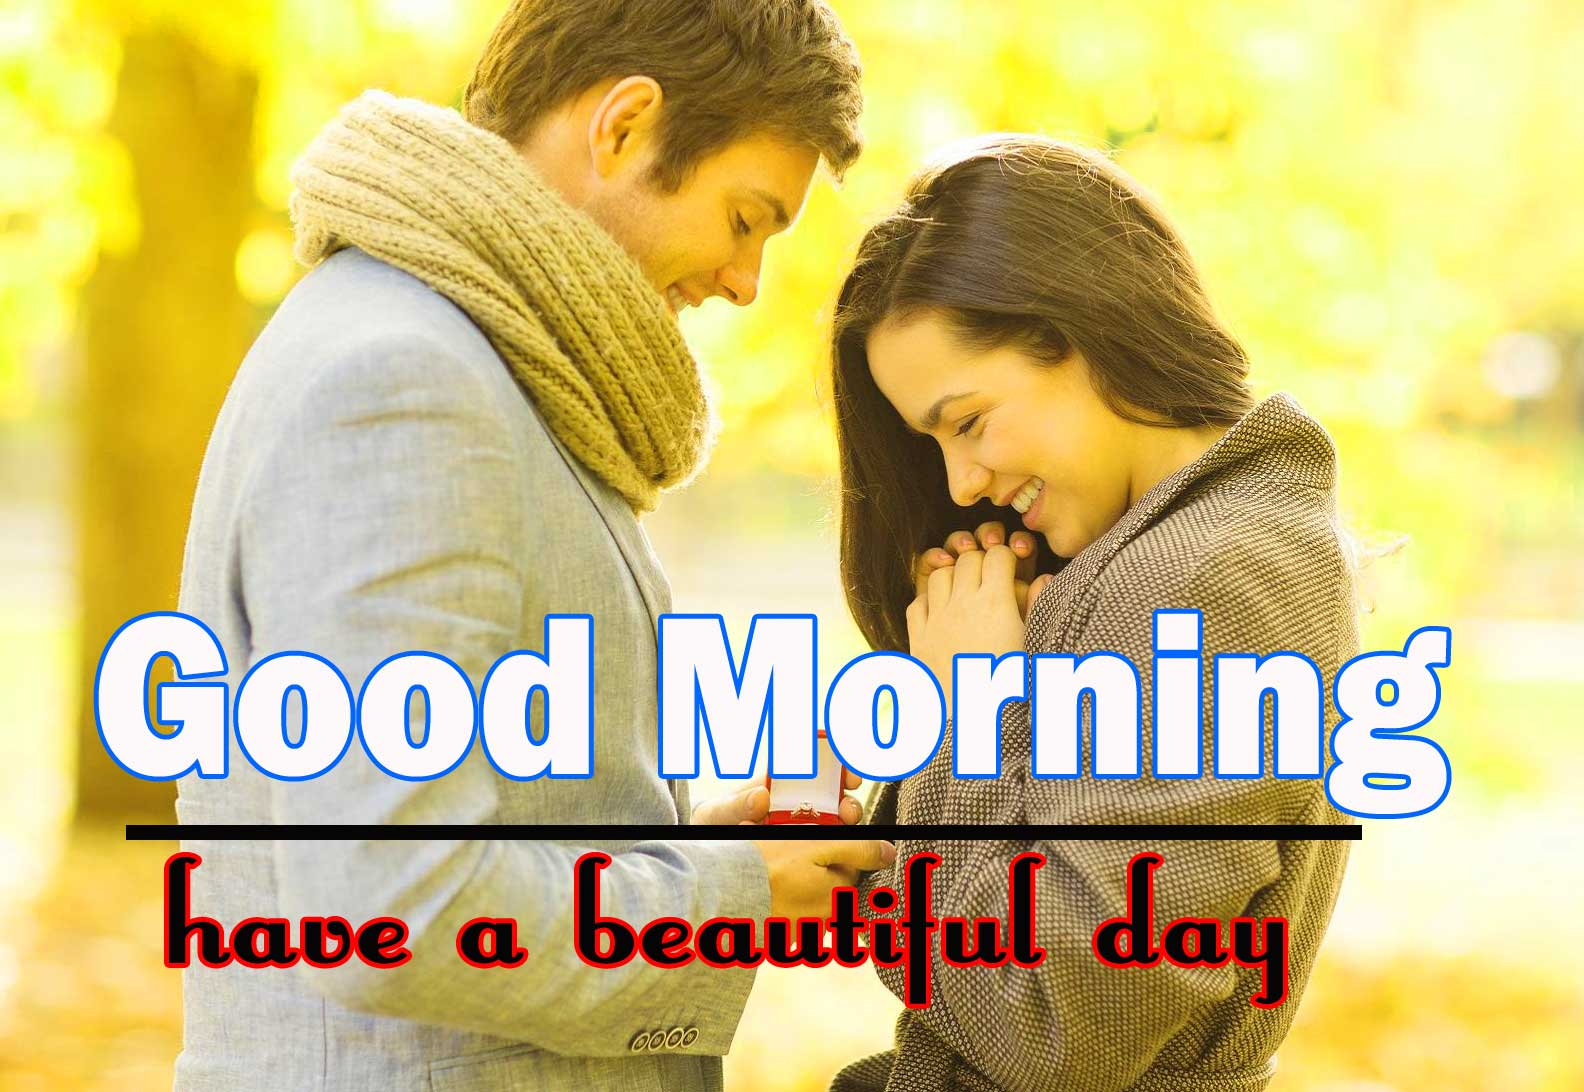 Romantic Love Couple Good Morning 3